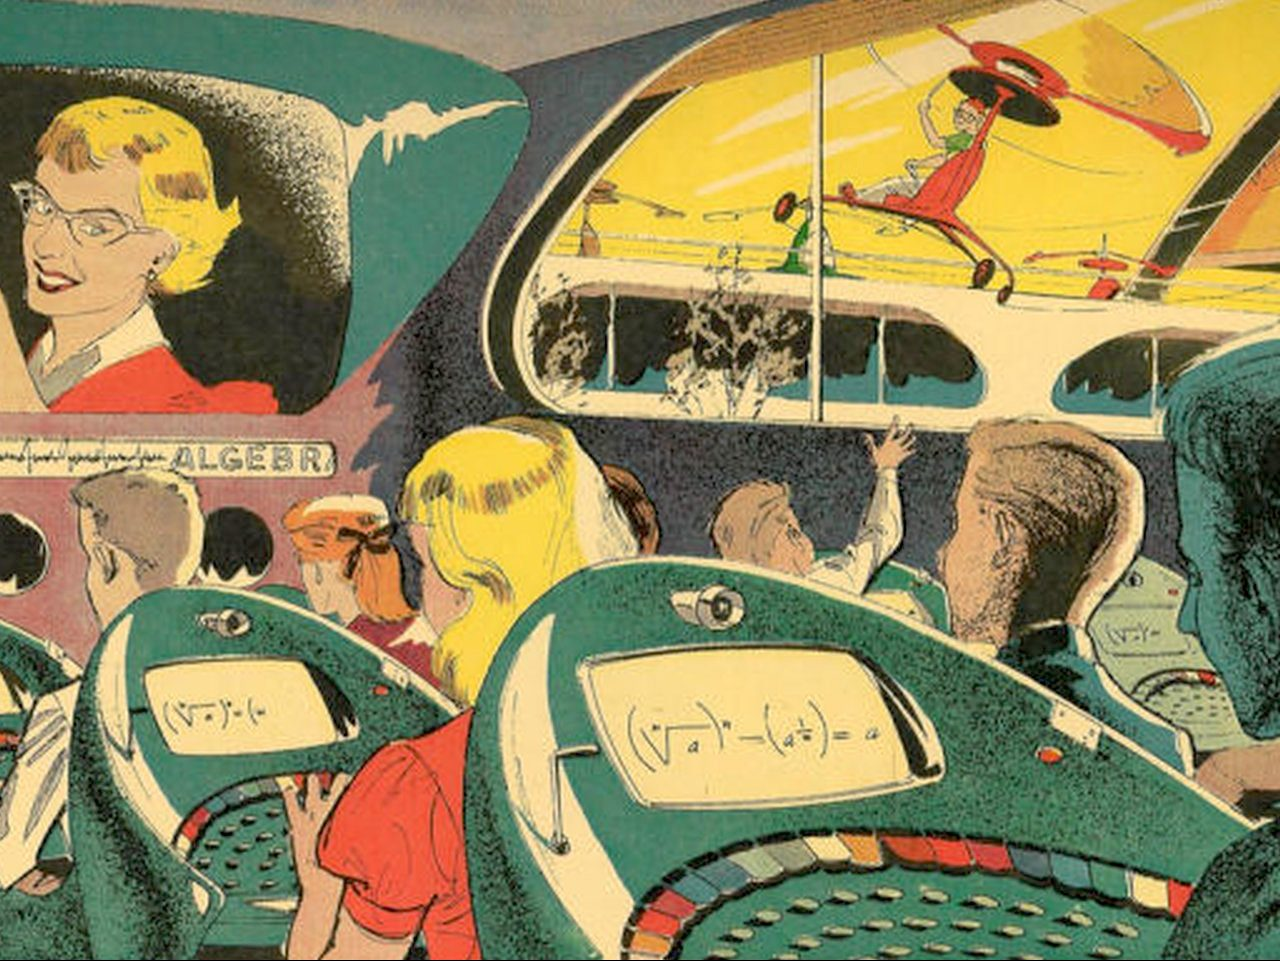 The Golden Age Of Futurism. (Bild: Gizmodo)